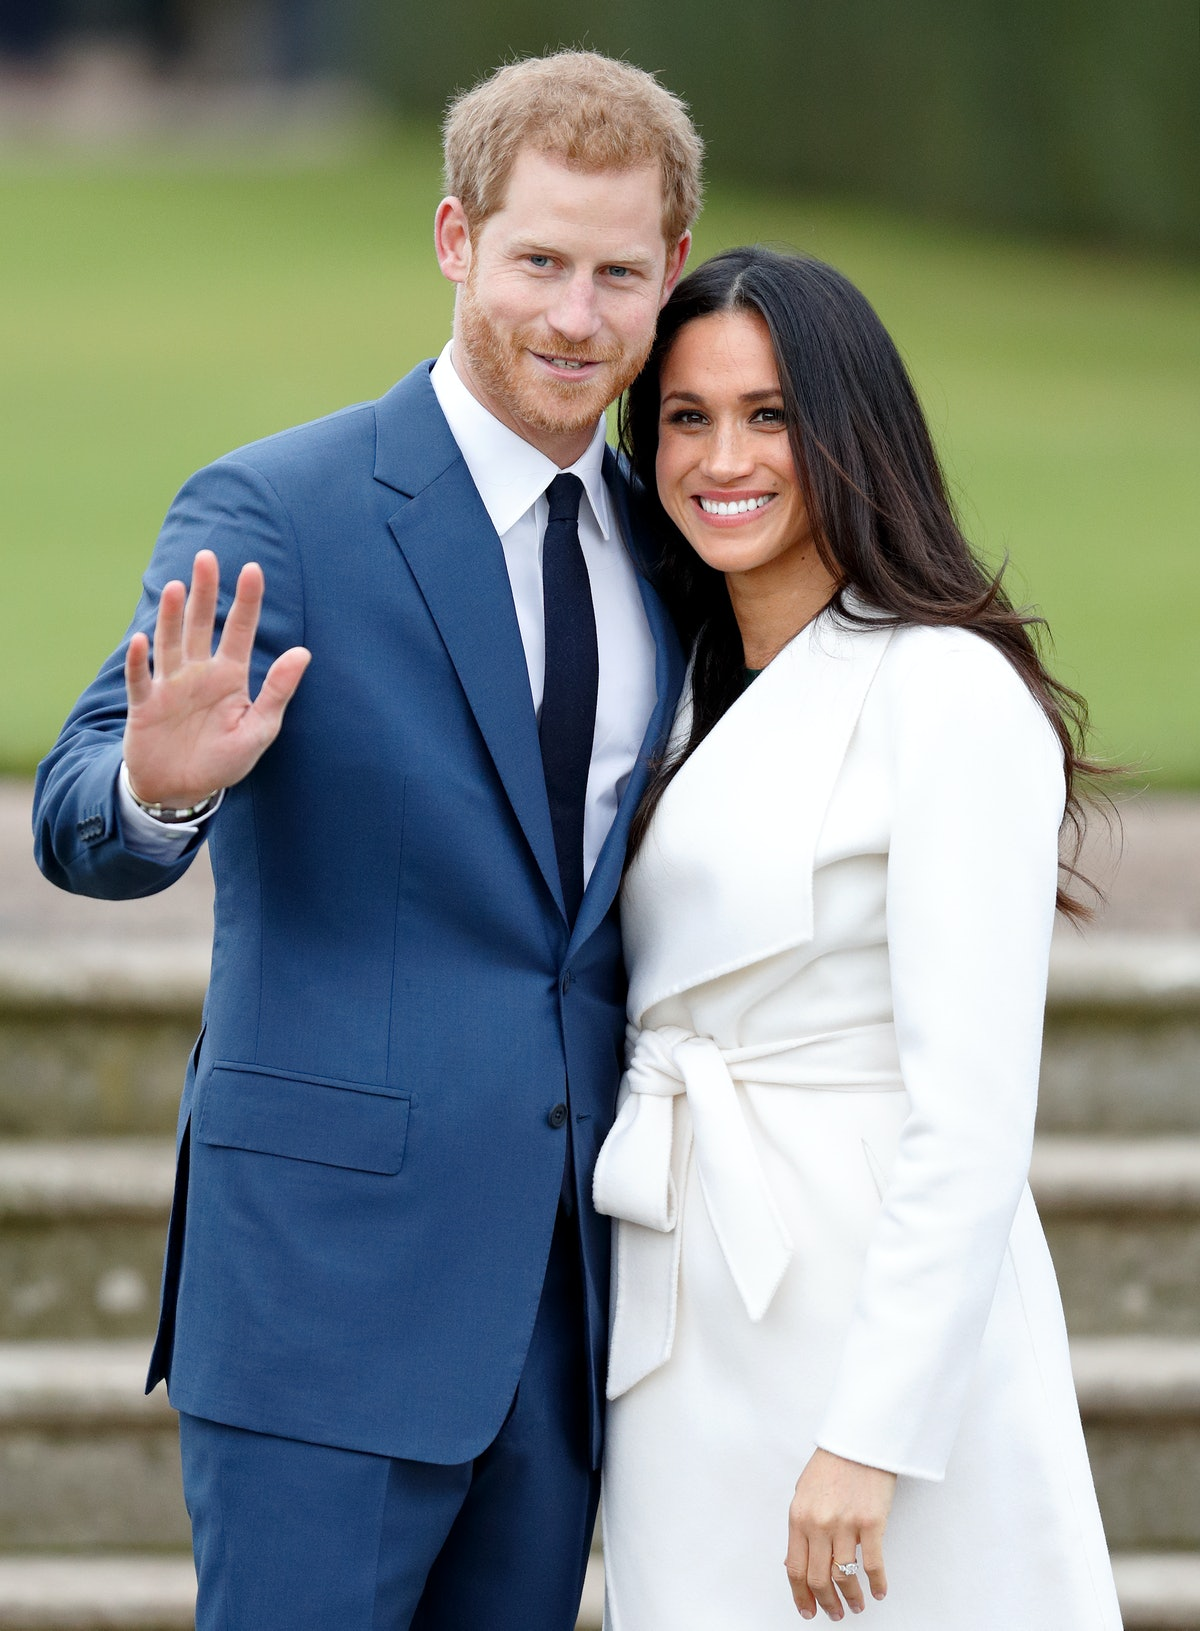 The Duke and Duchess of Sussex, shown here waving to cameras, no longer have HRH titles.